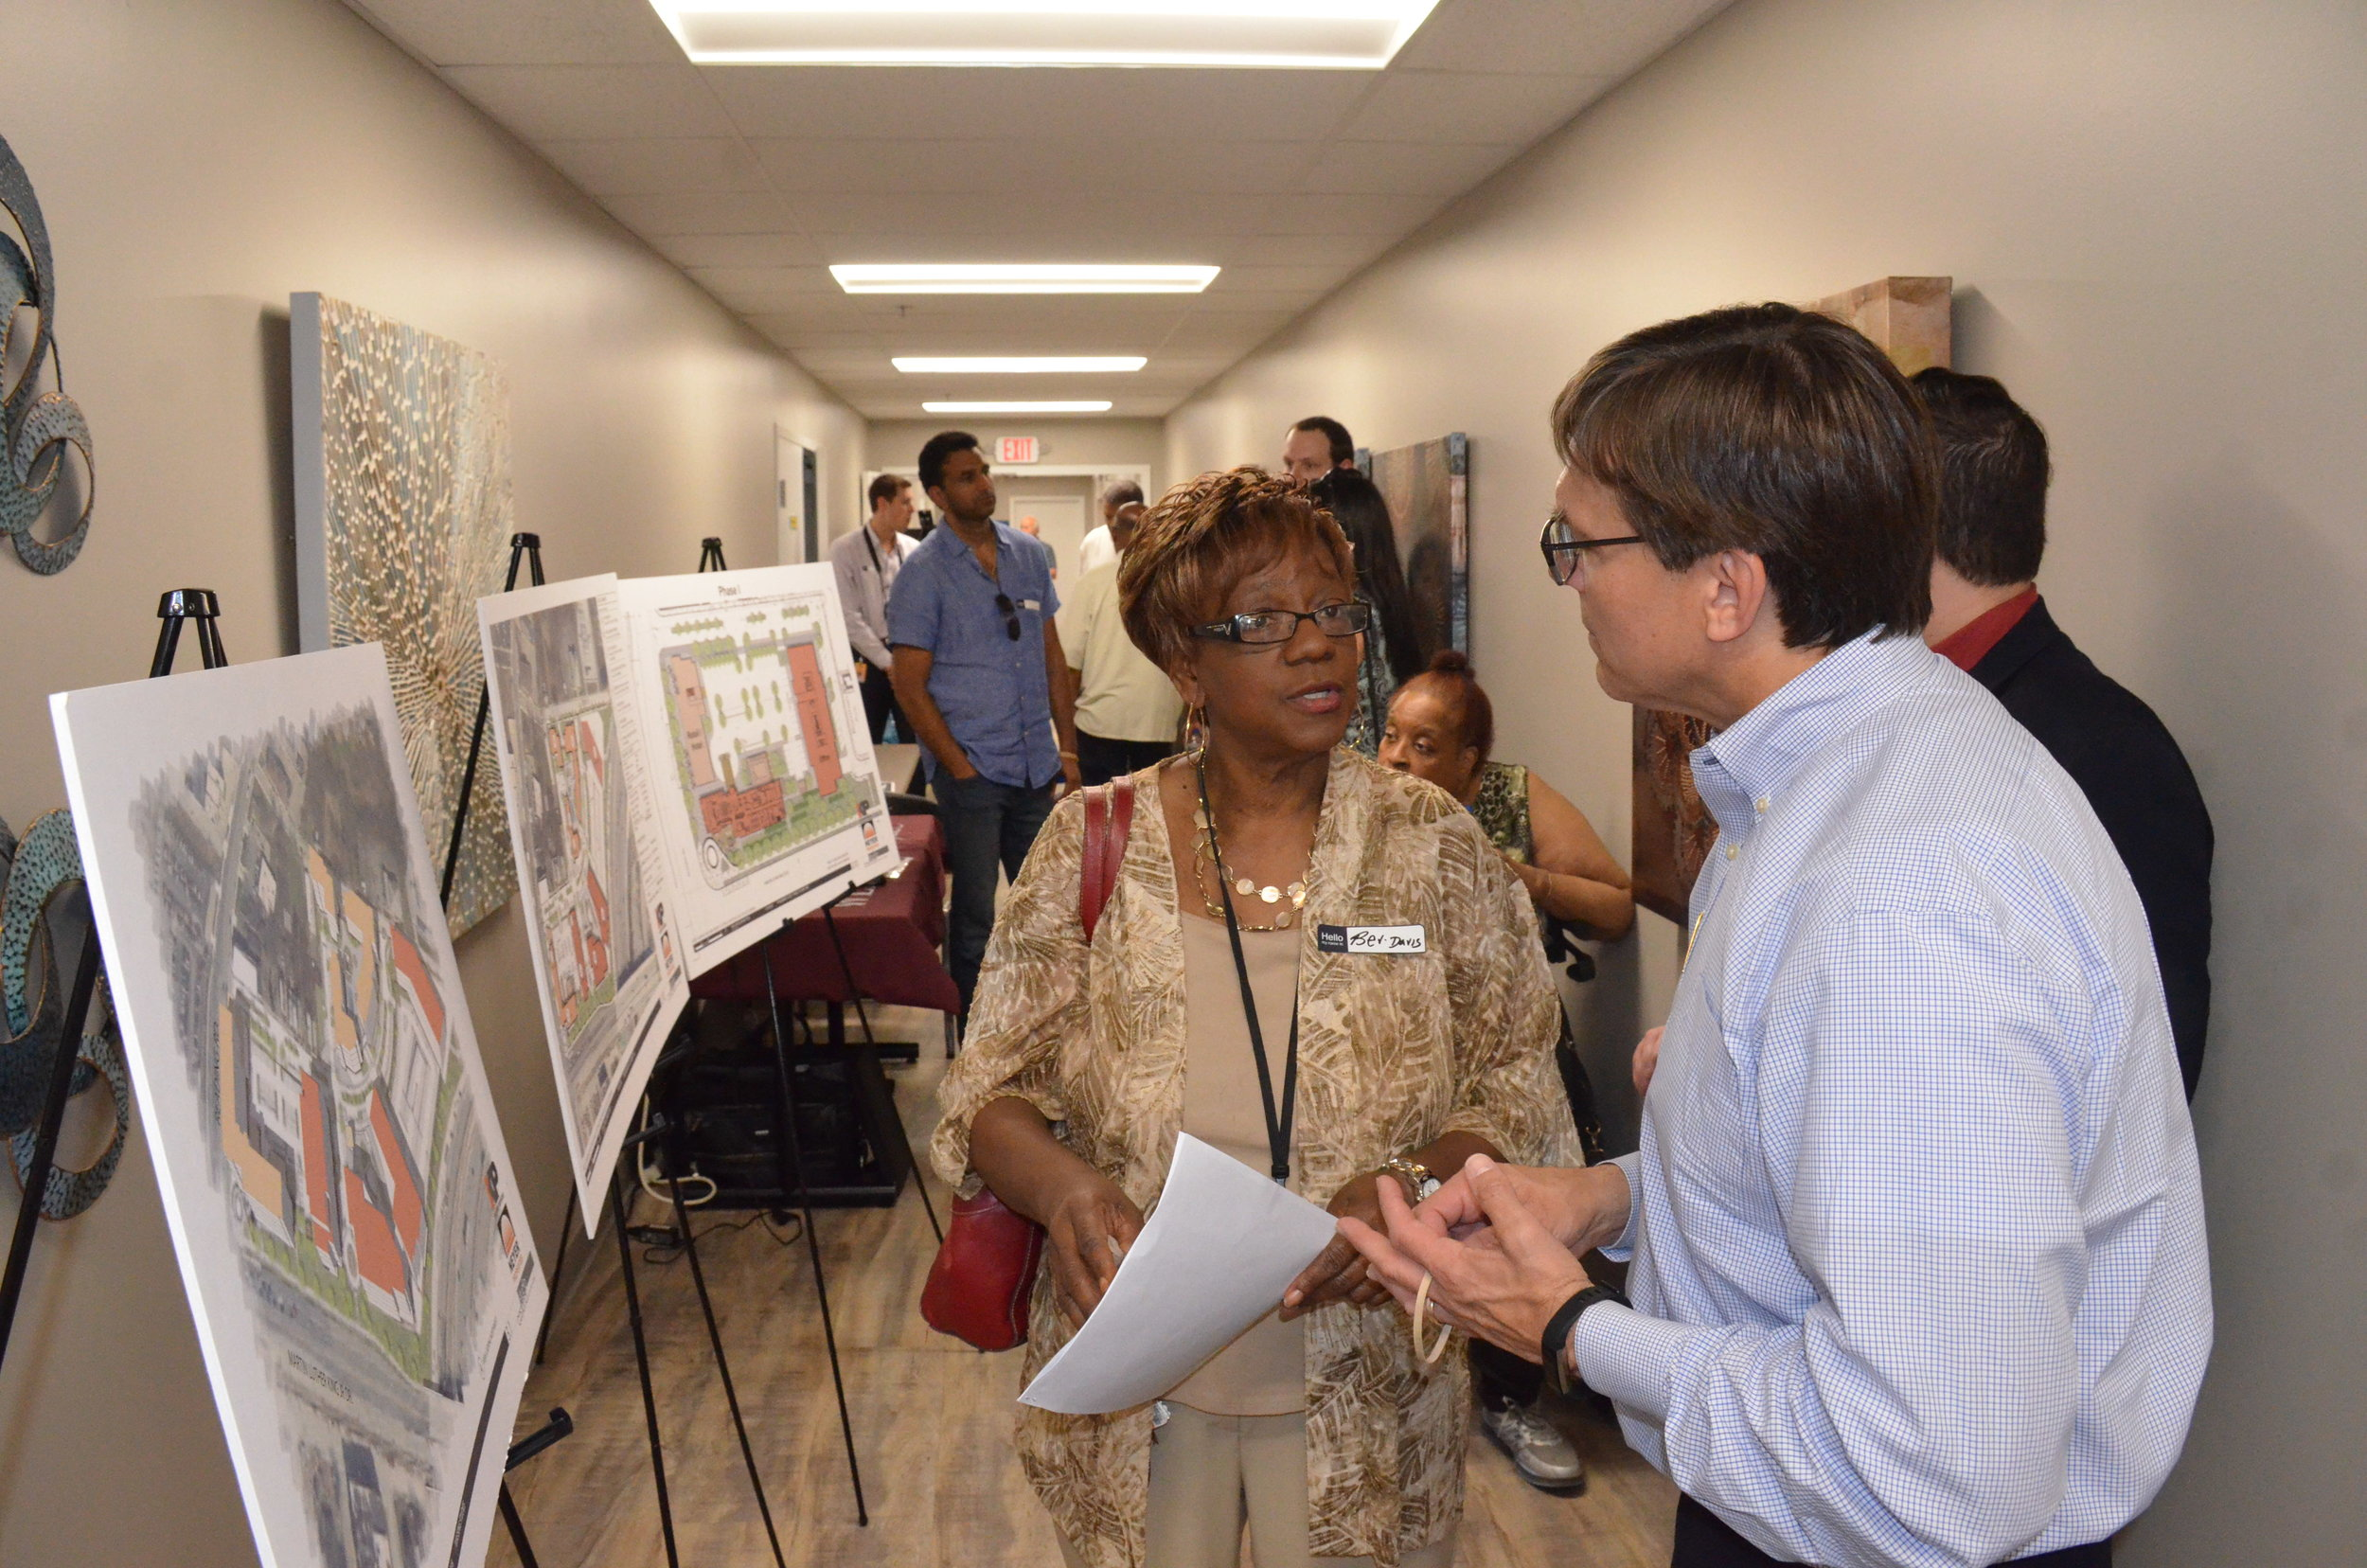 Chris Dobrozsi, VP of Real Estate Development at Neyer Properties, talks with Beverly Davis, Avondale resident and Rockdale Elementary teacher, about Neyer and Kularni Properties' upcoming developments in UIC's northeast quadrant.